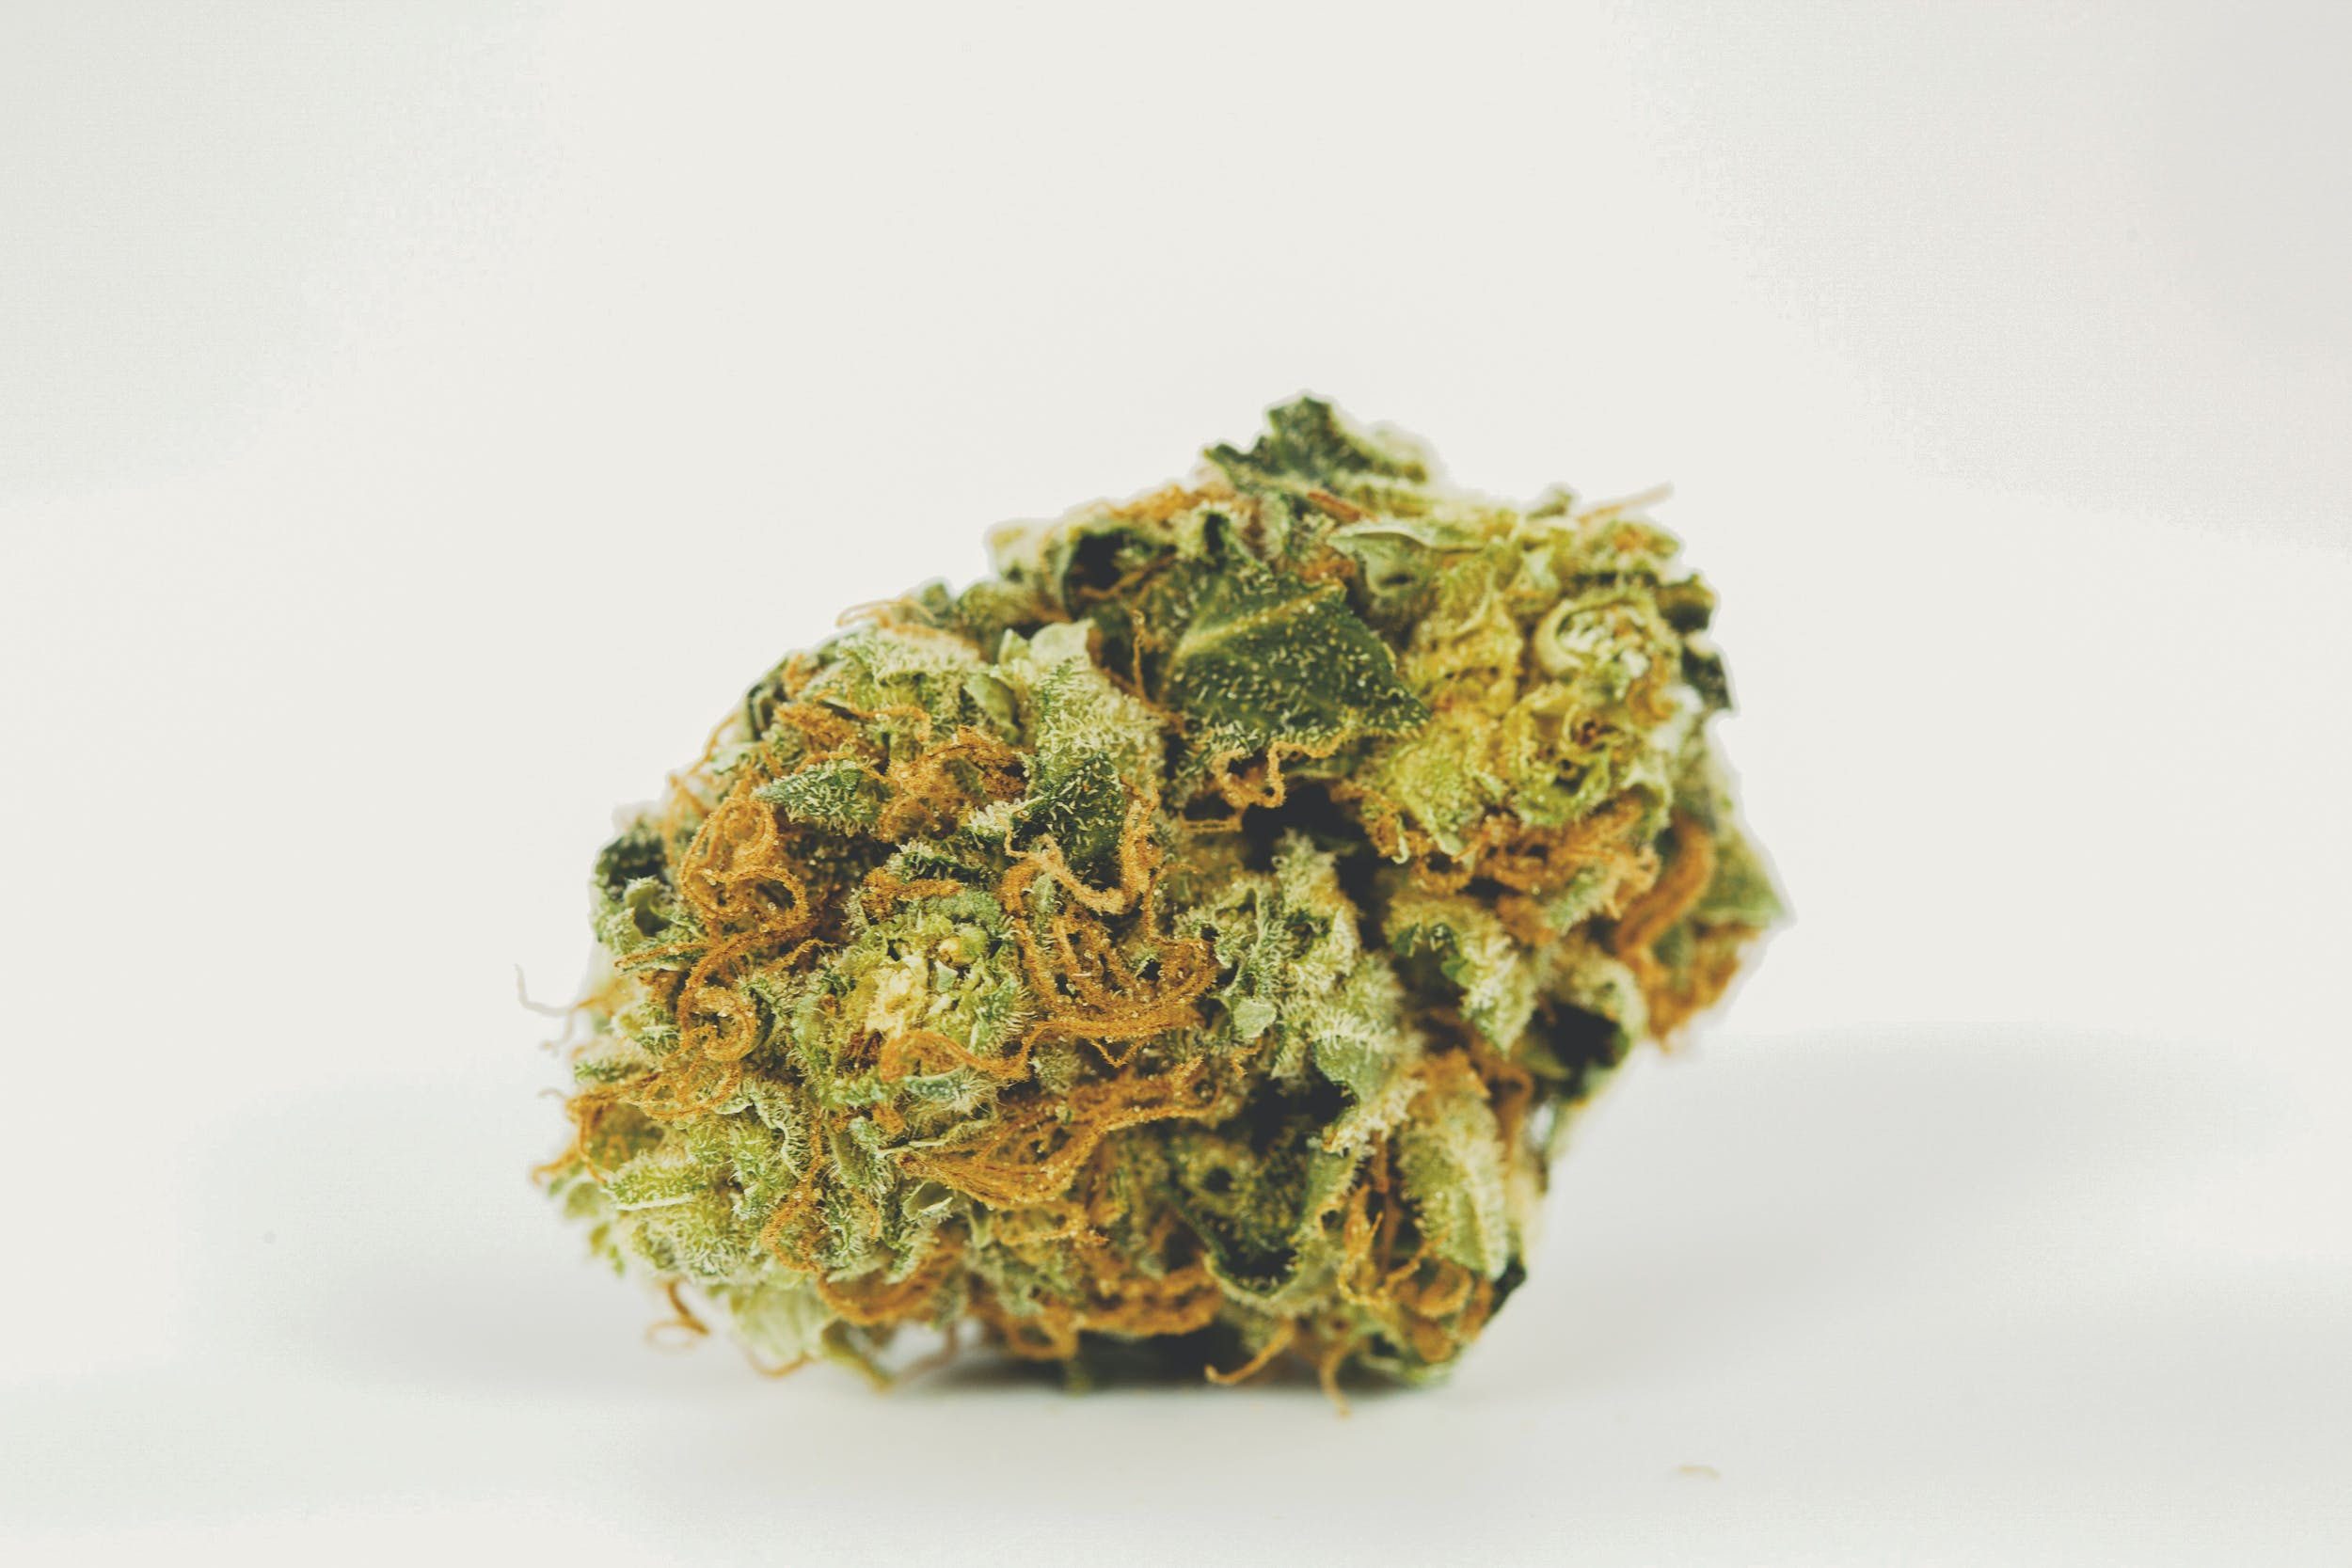 Strawberry Cough 1 These are the Best Weed Strains in the World